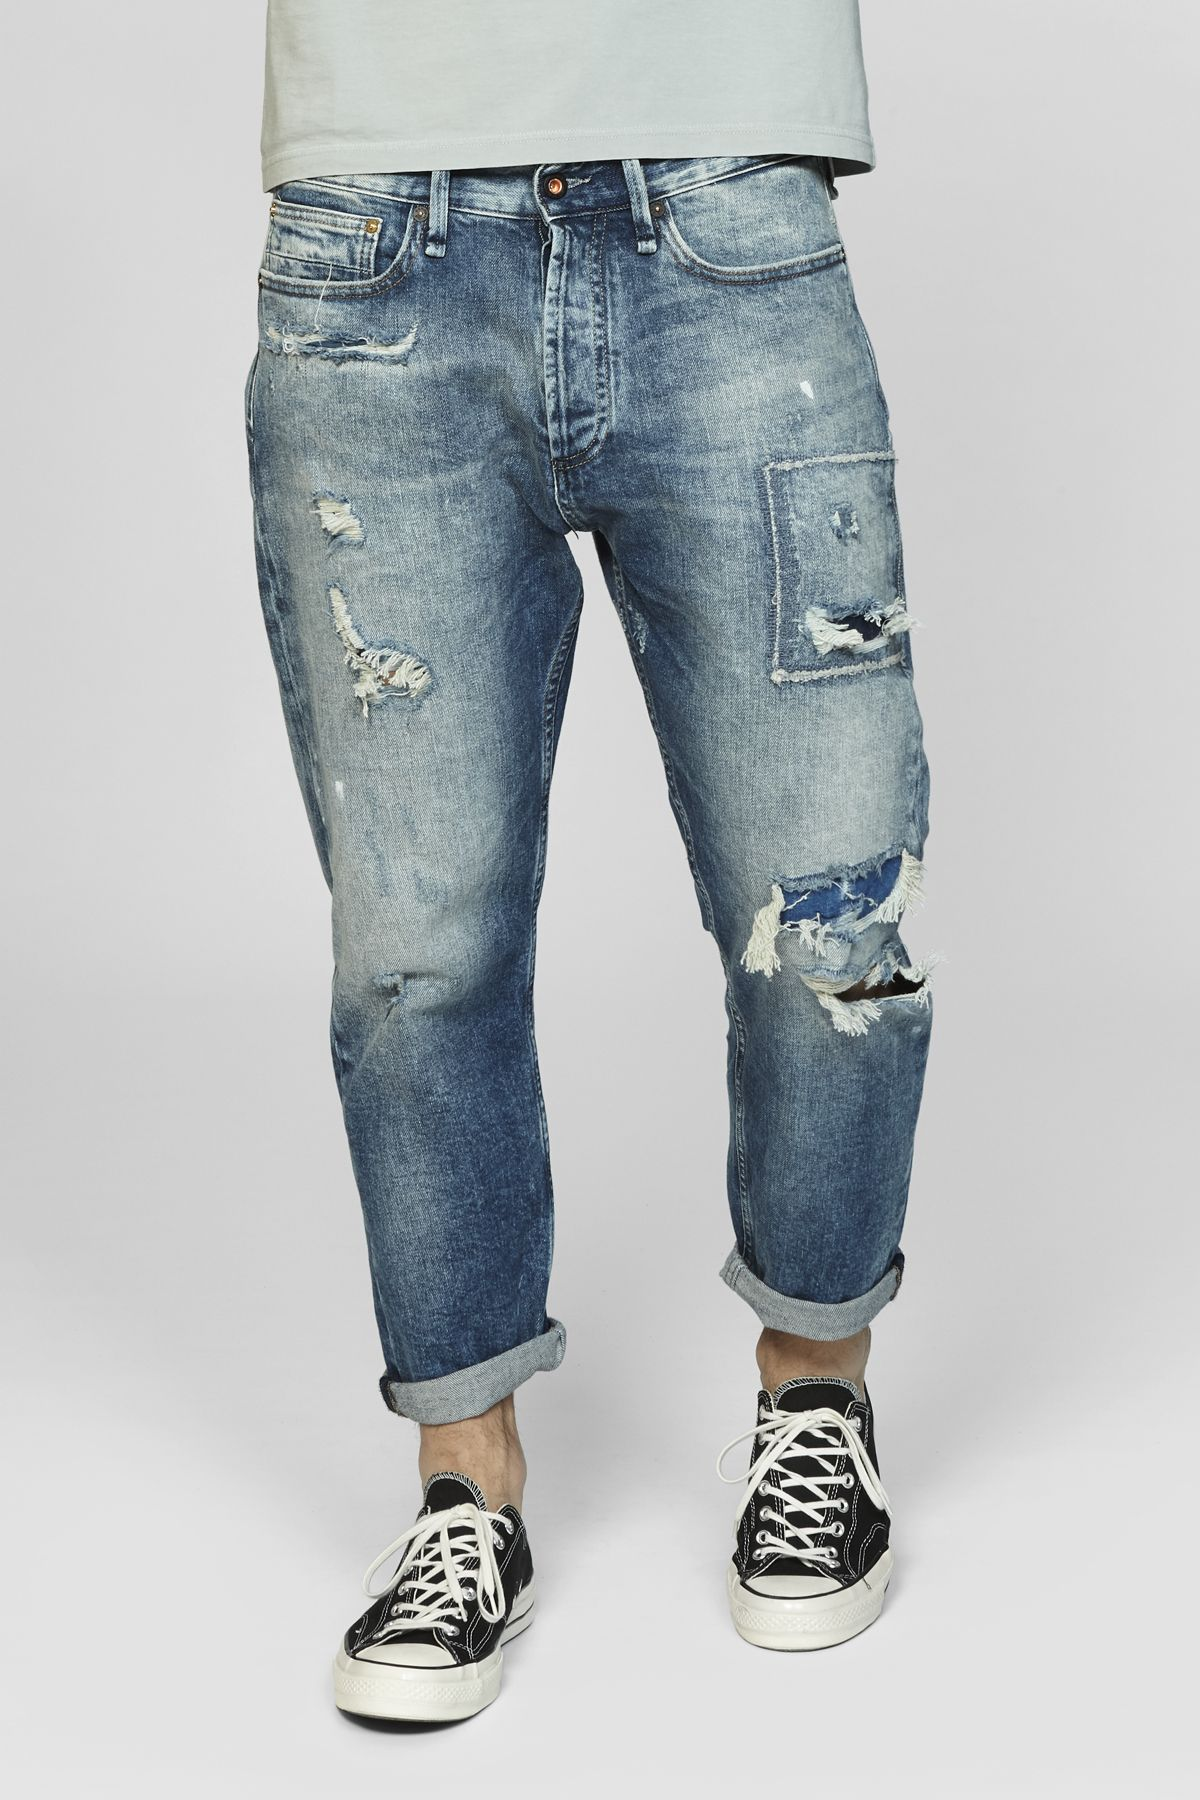 Crop Loose Carrot Fit Jeans GRLV · DENHAM | Jeans fit